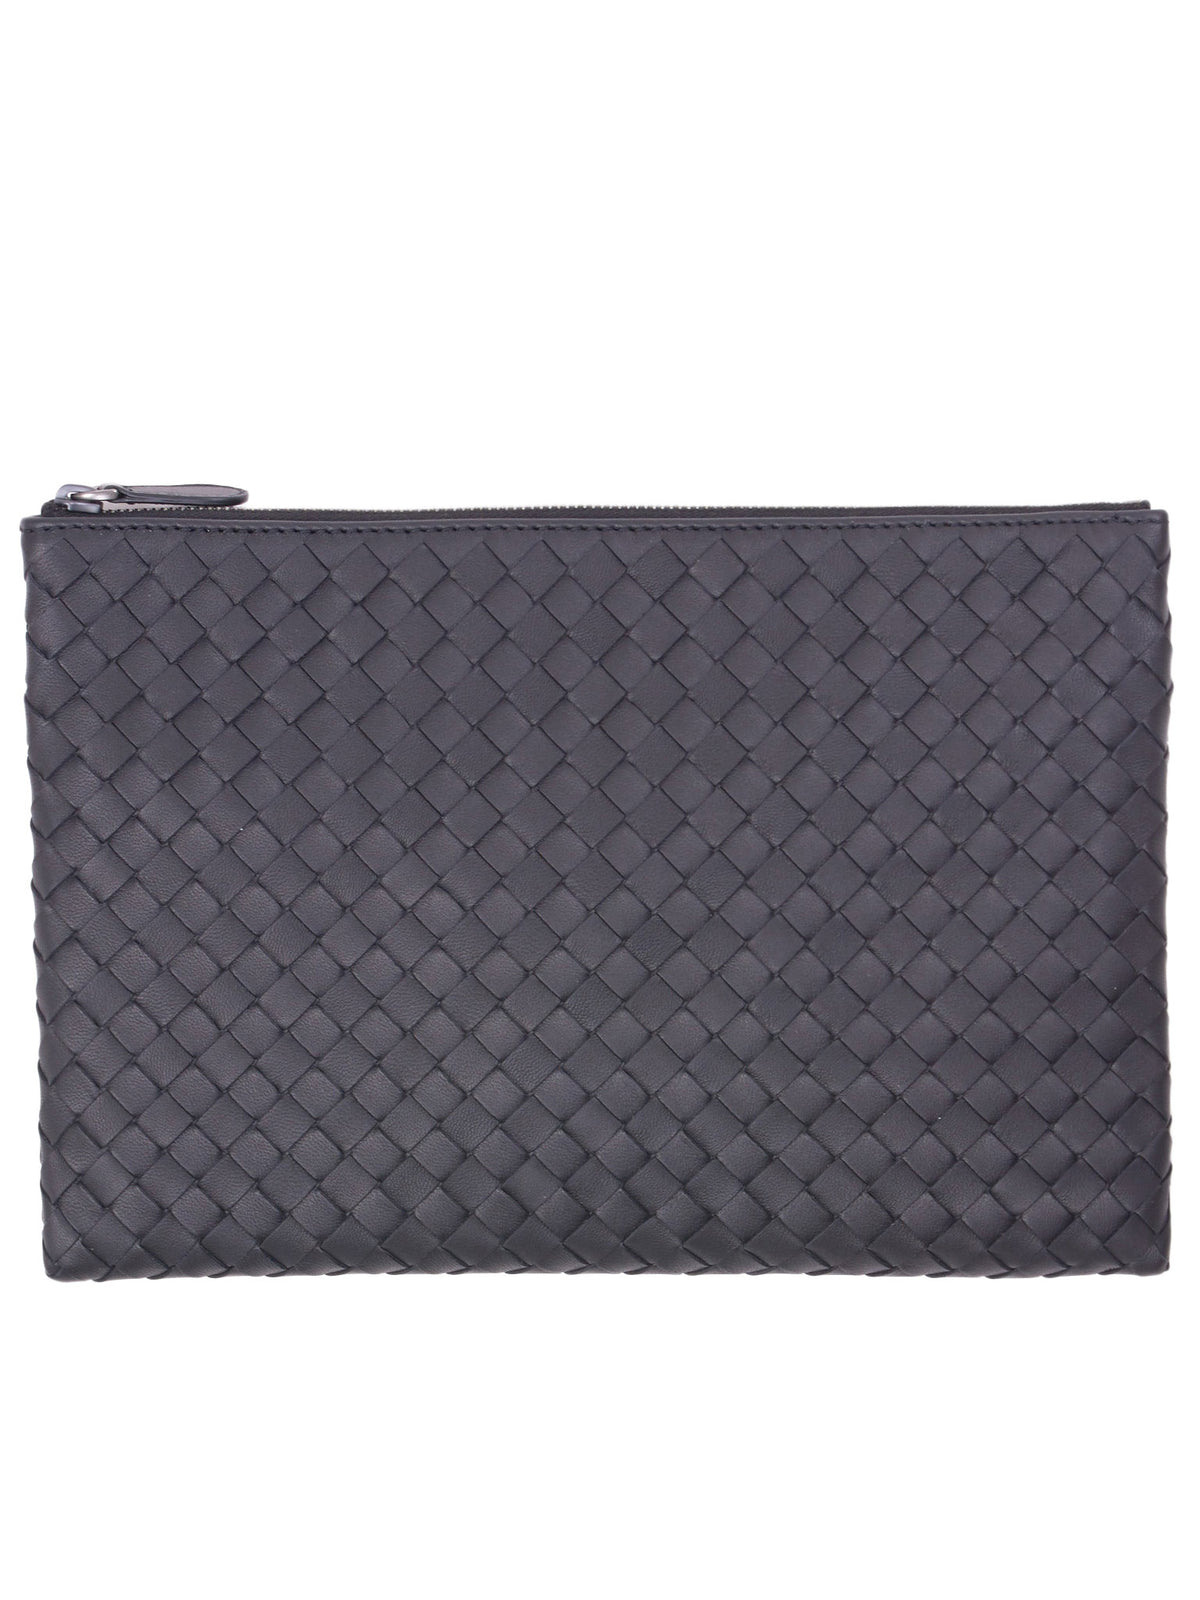 Medium Pouch (522429V001N-BLACK)